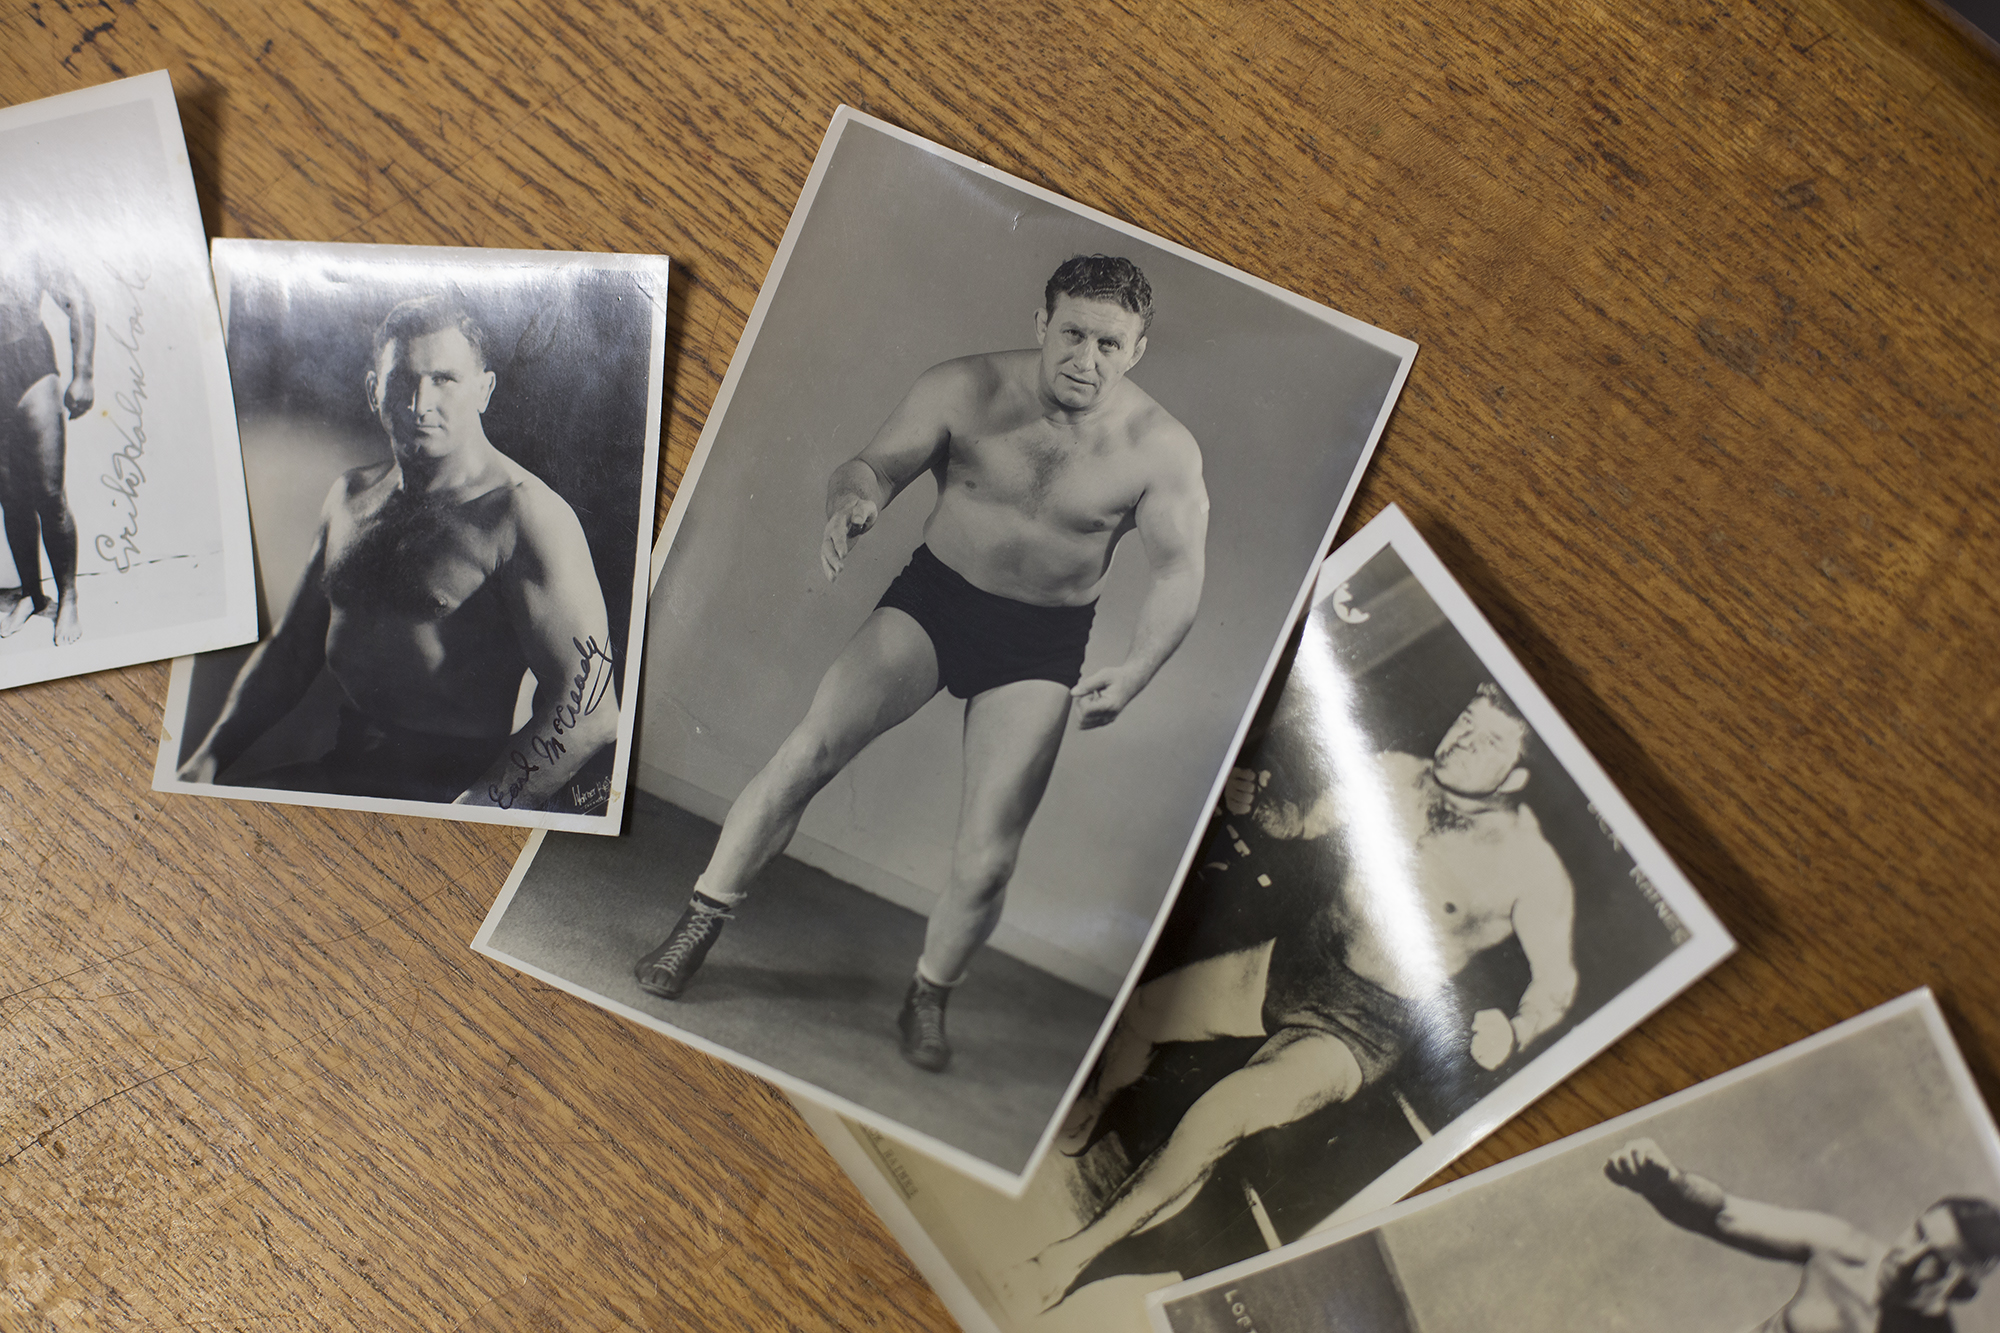 There is a large selection of wonderful old photographs for sale. Some of them are rather amusing!